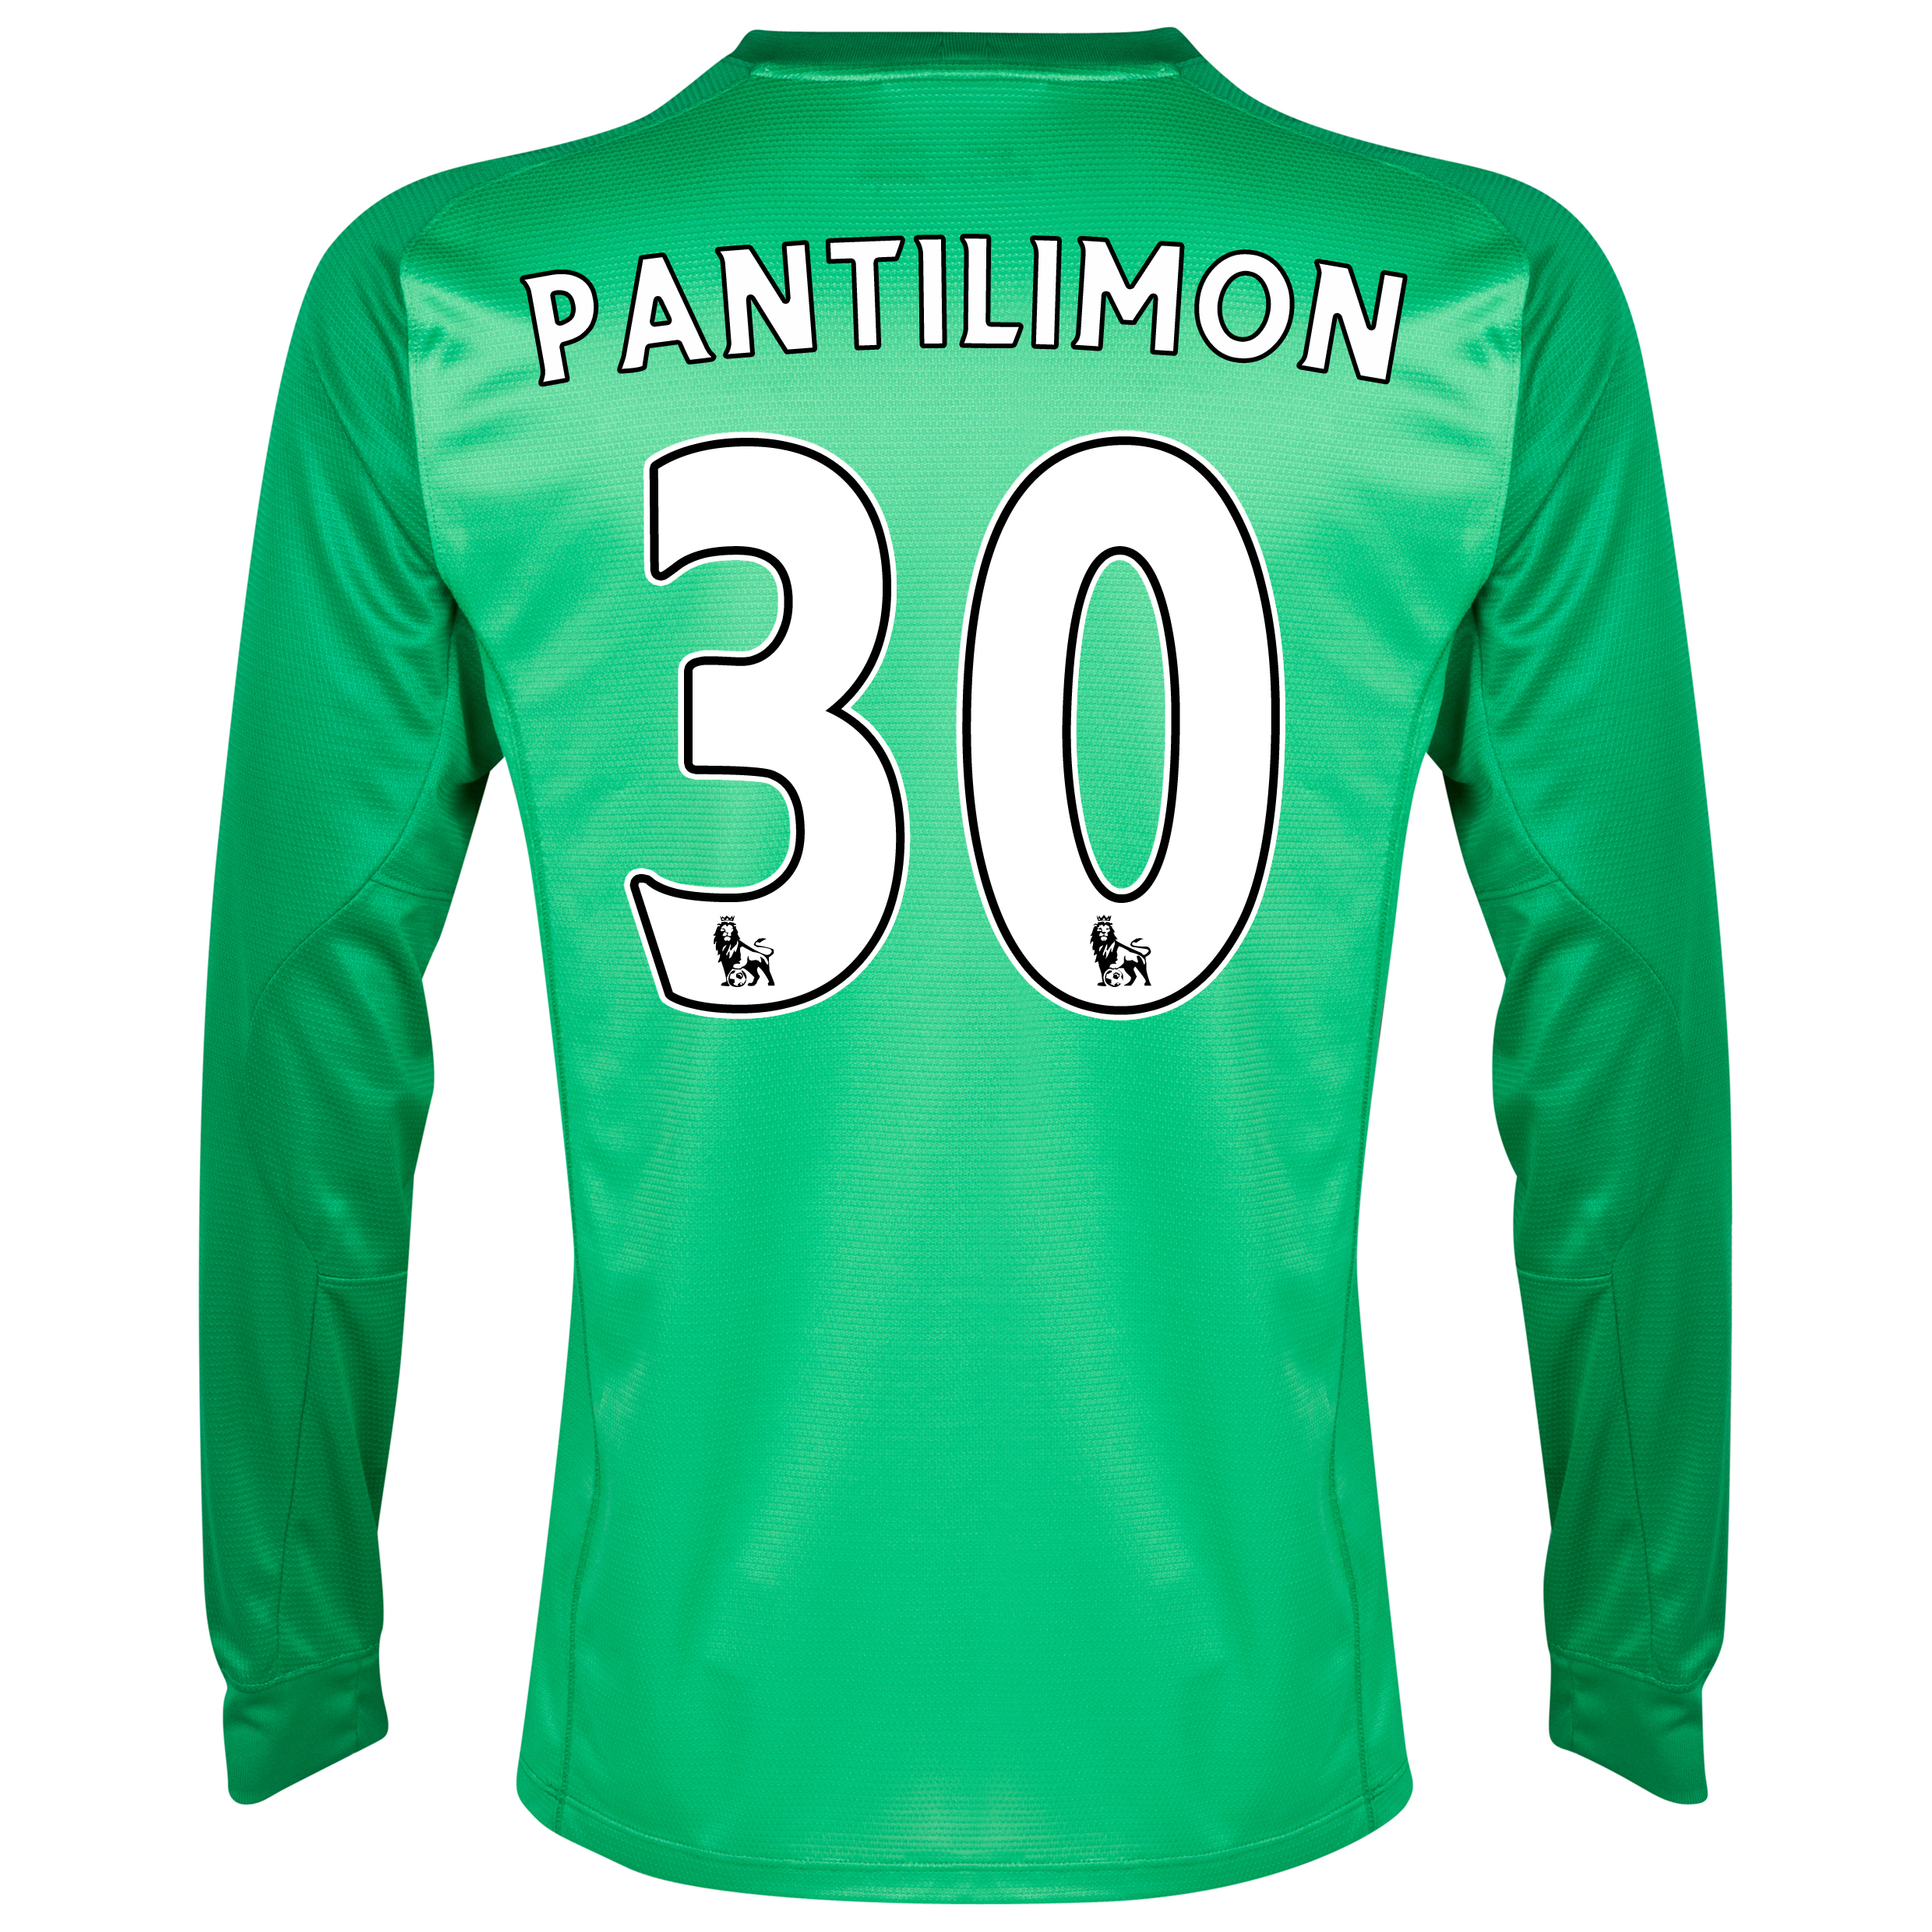 Manchester City Option 1 Goalkeeper Shirt 2013/14 - Green with Pantilimon 30 printing